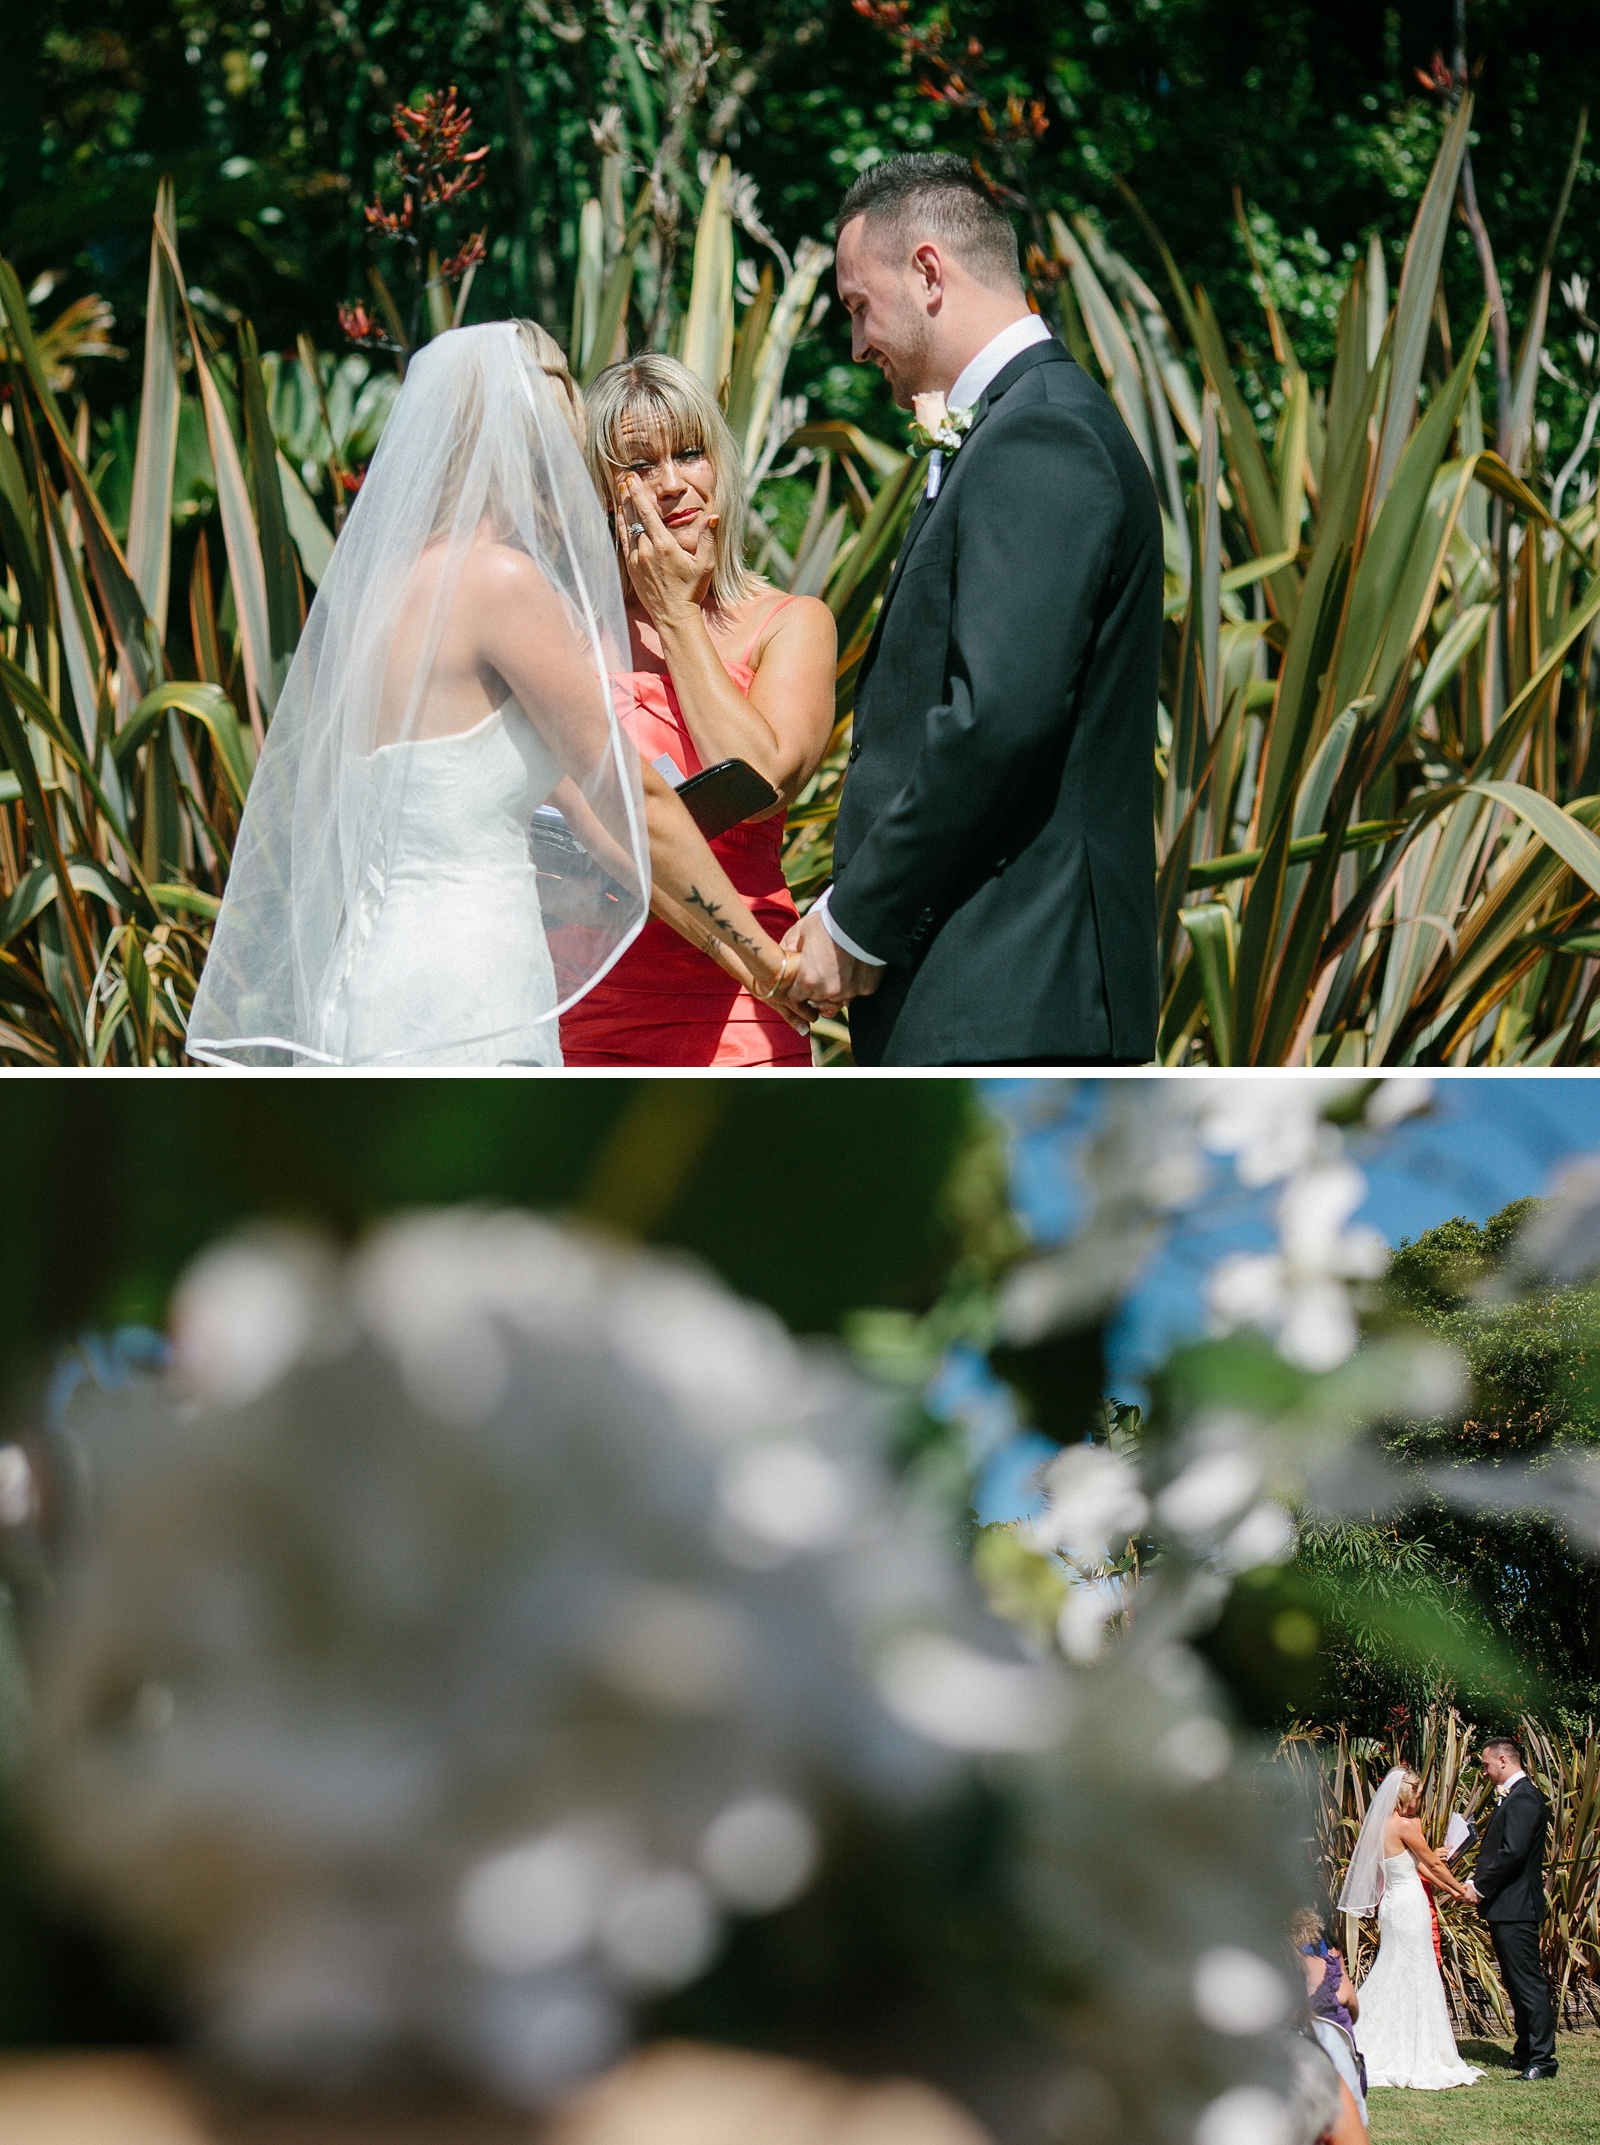 ConnorLaura_Auckland Wedding Photographer_Patty Lagera_0053.jpg